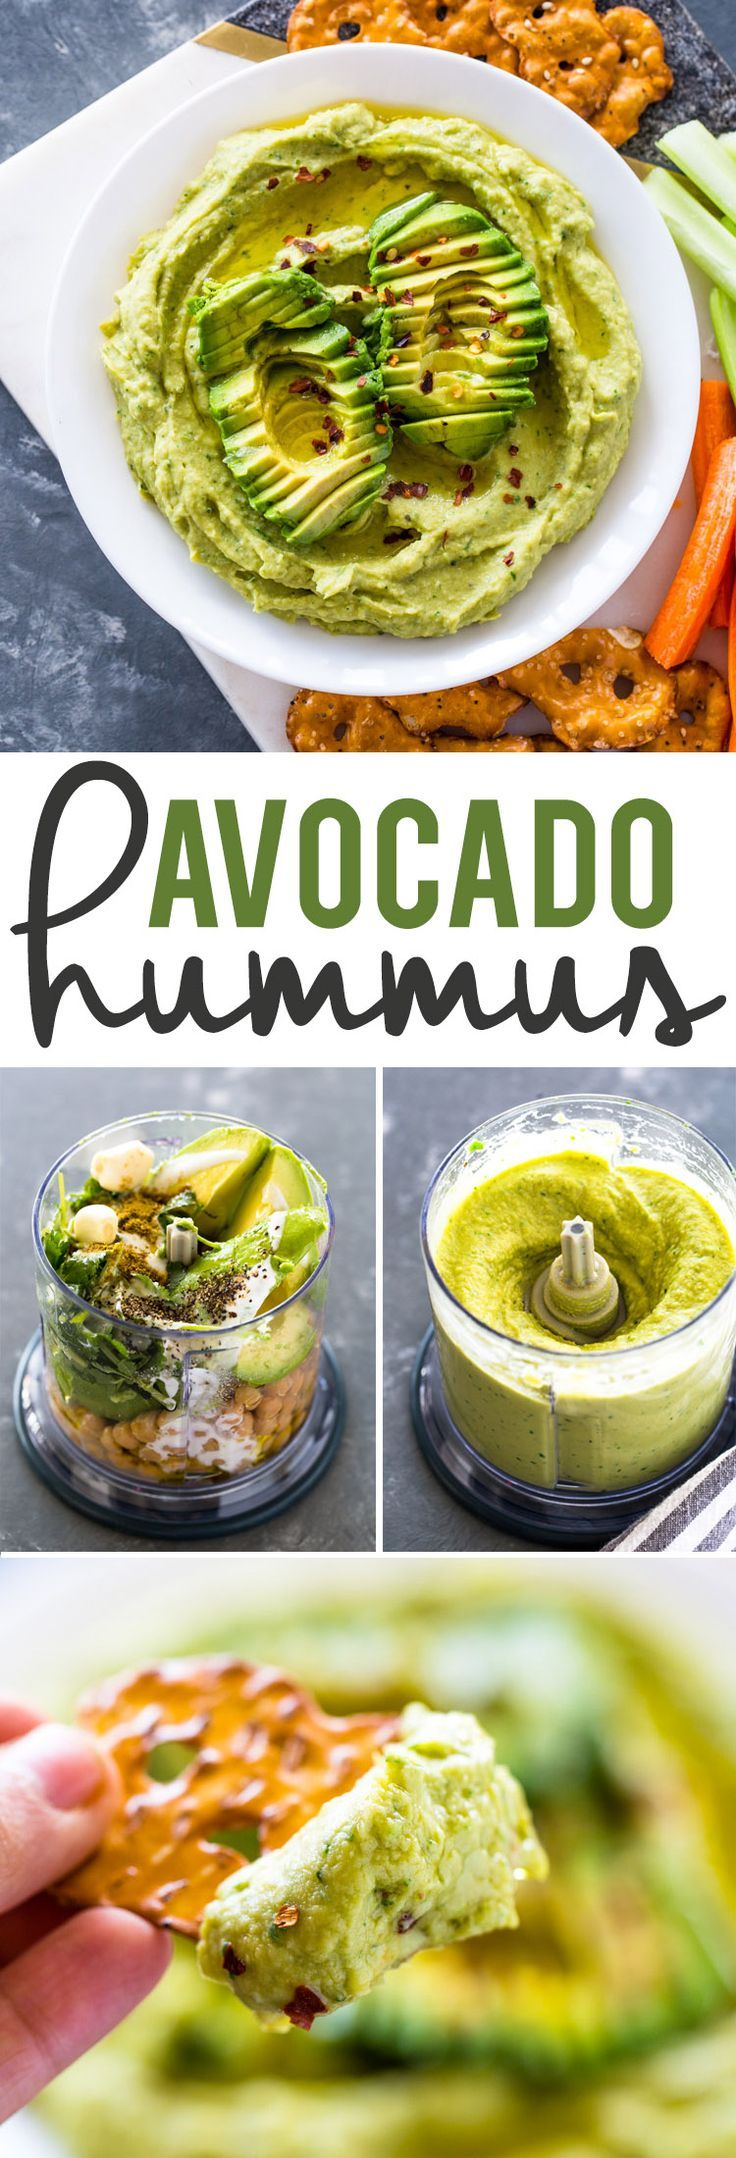 Healthy Avocado Hummus Healthy Avocado Hummus Related posts: Avocado hummus: The healthy snack to lose weight in your diet – here's the recipe! Healthy avocado chicken salad Avocado Hummus Avocado Rice – the healthy low carb alternative to rice Salad Recipes For Dinner, Chicken Salad Recipes, Healthy Salad Recipes, Appetizer Recipes, Healthy Snacks, Vegetarian Recipes, Best Avocado Recipes, Avocado Ideas, Hummus